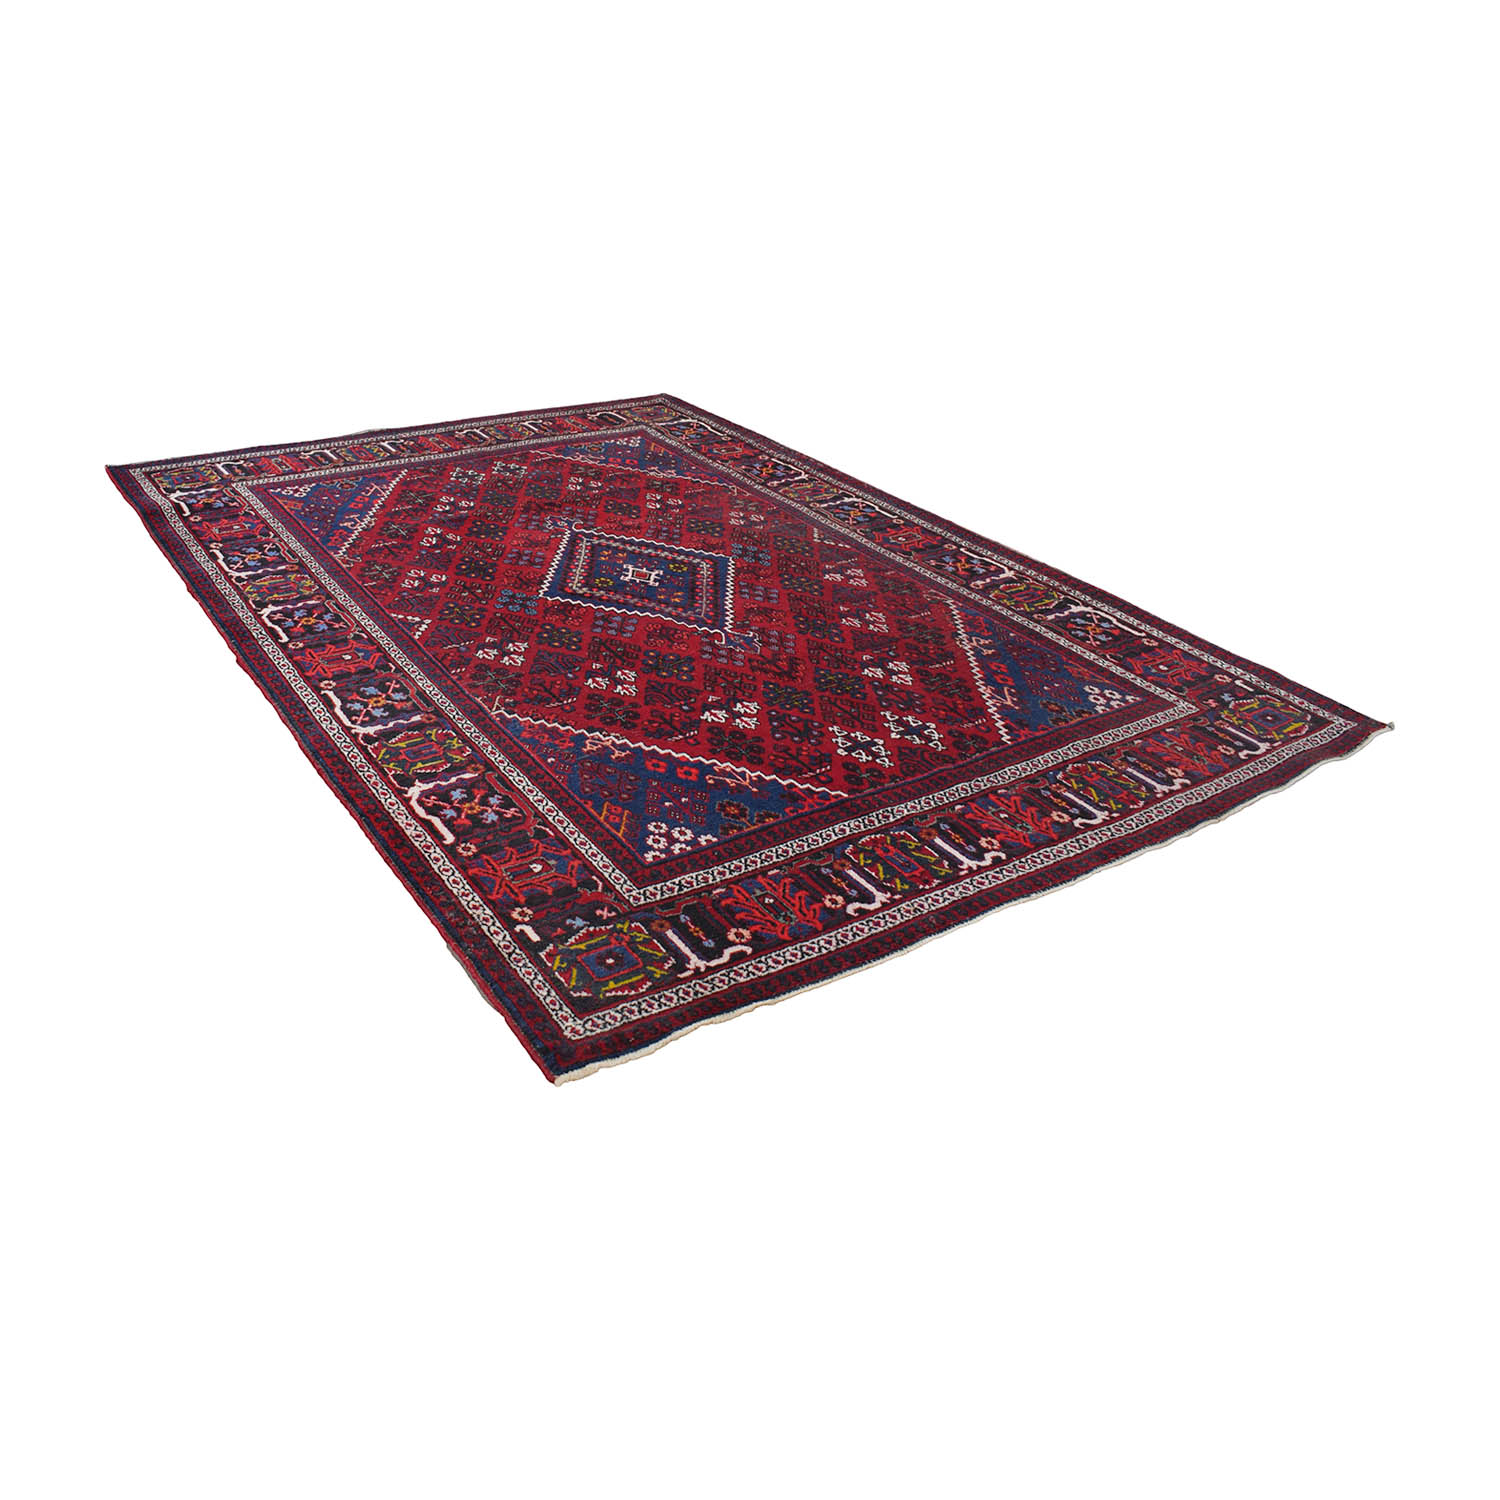 Diamond Burgundy Red and Navy Blue Rug dimensions